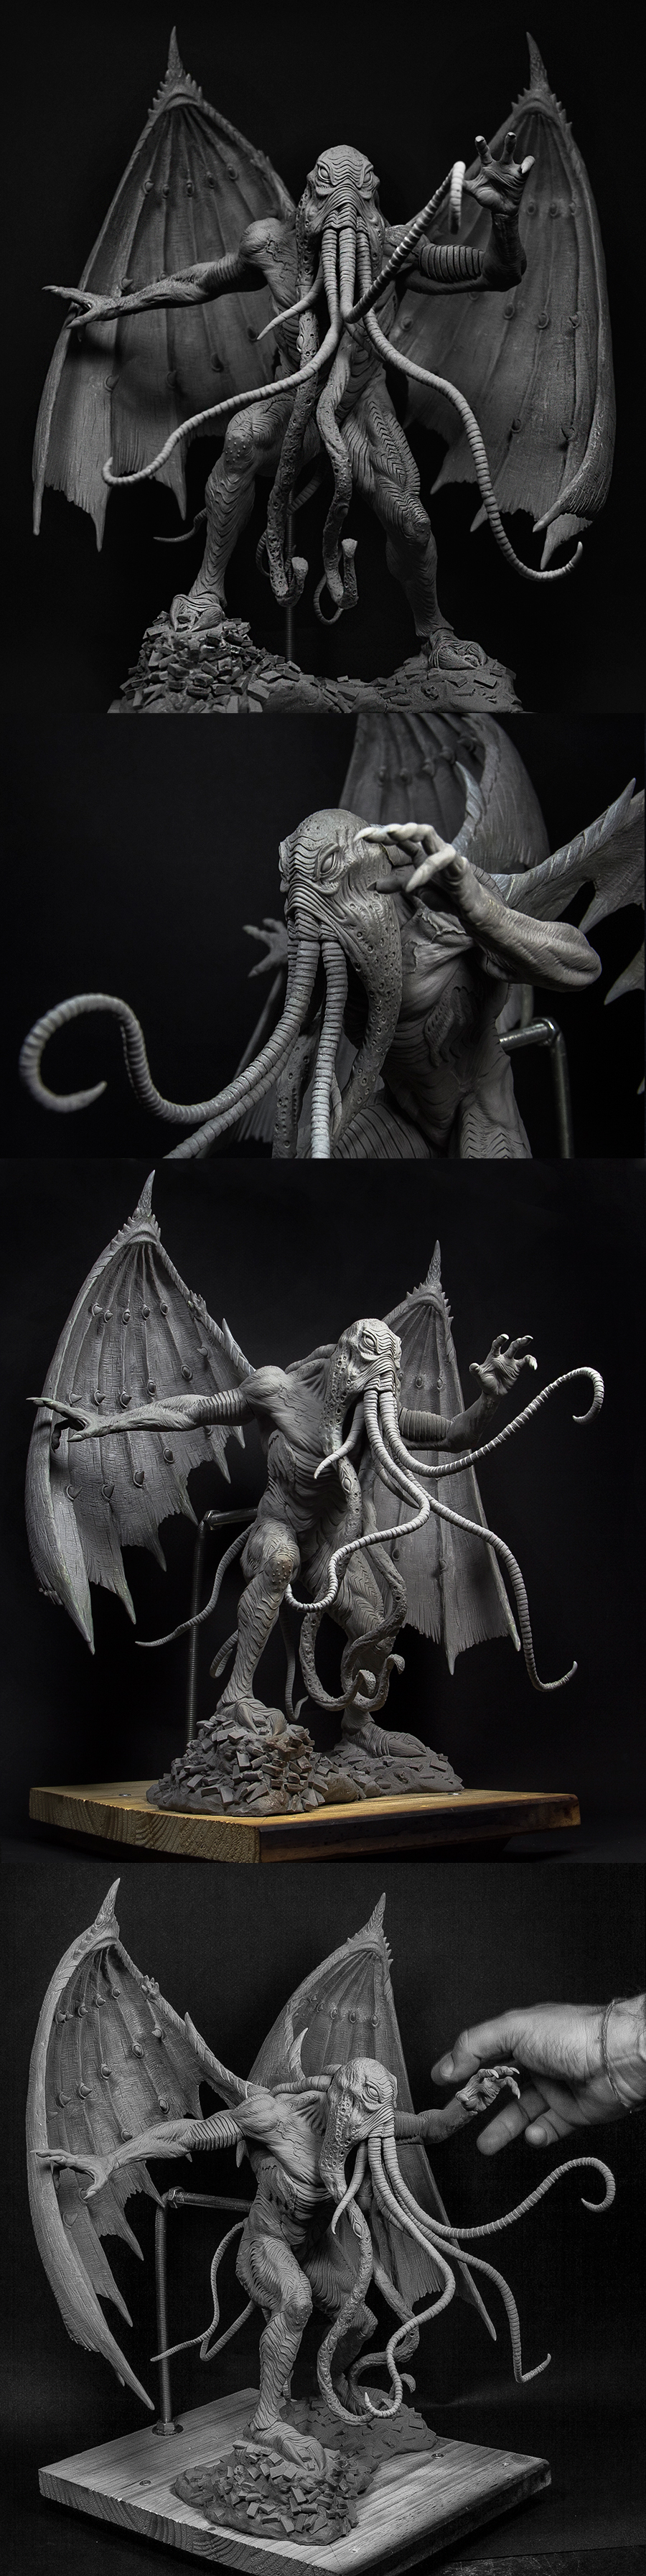 Avatar of Cthulhu more pics